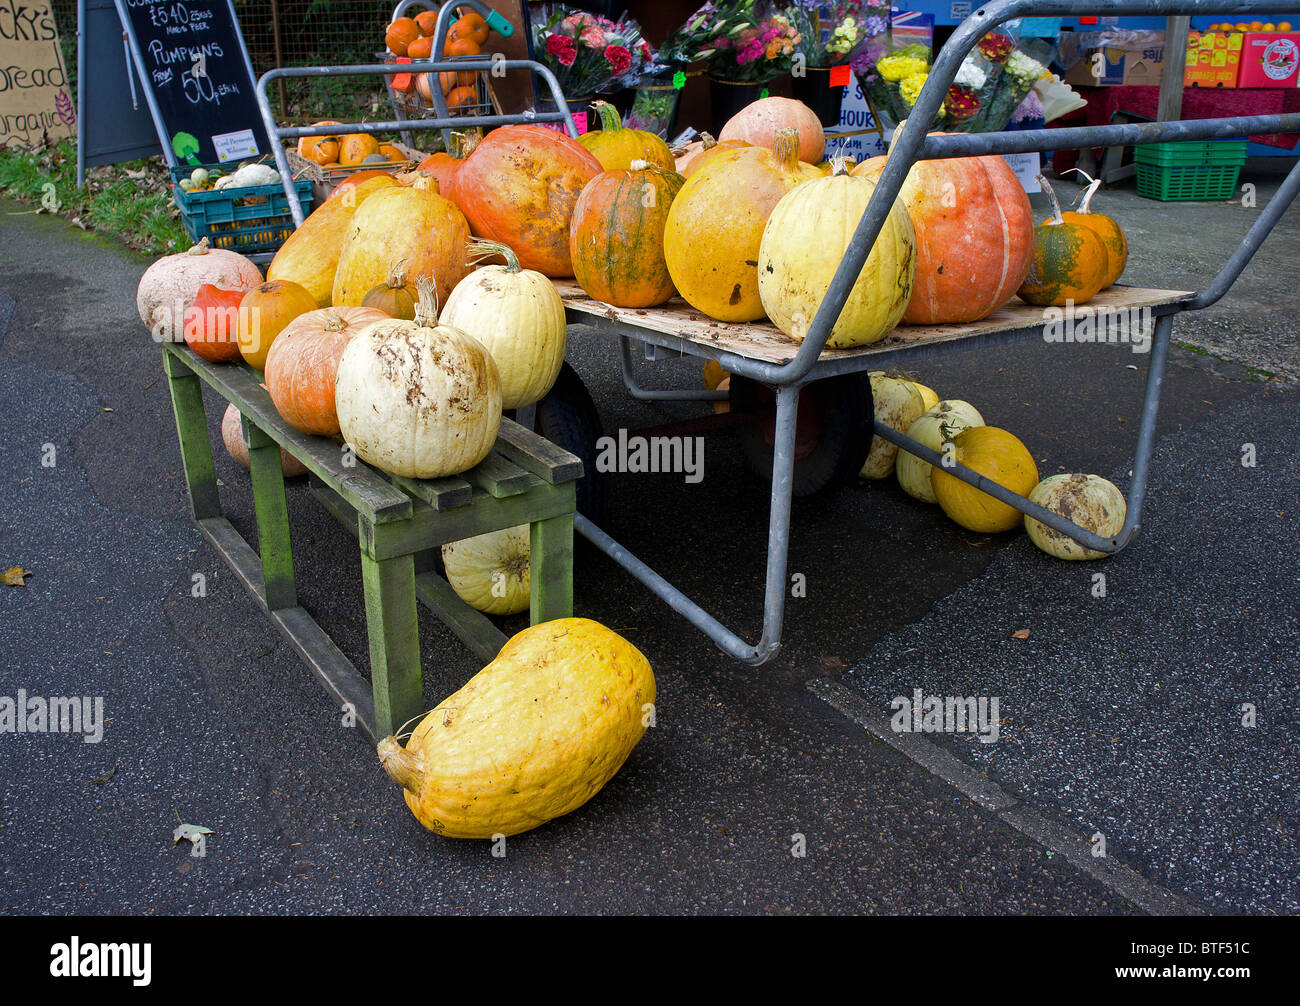 pumpkins for sale at a roadside stall, cornwall, uk - Stock Image